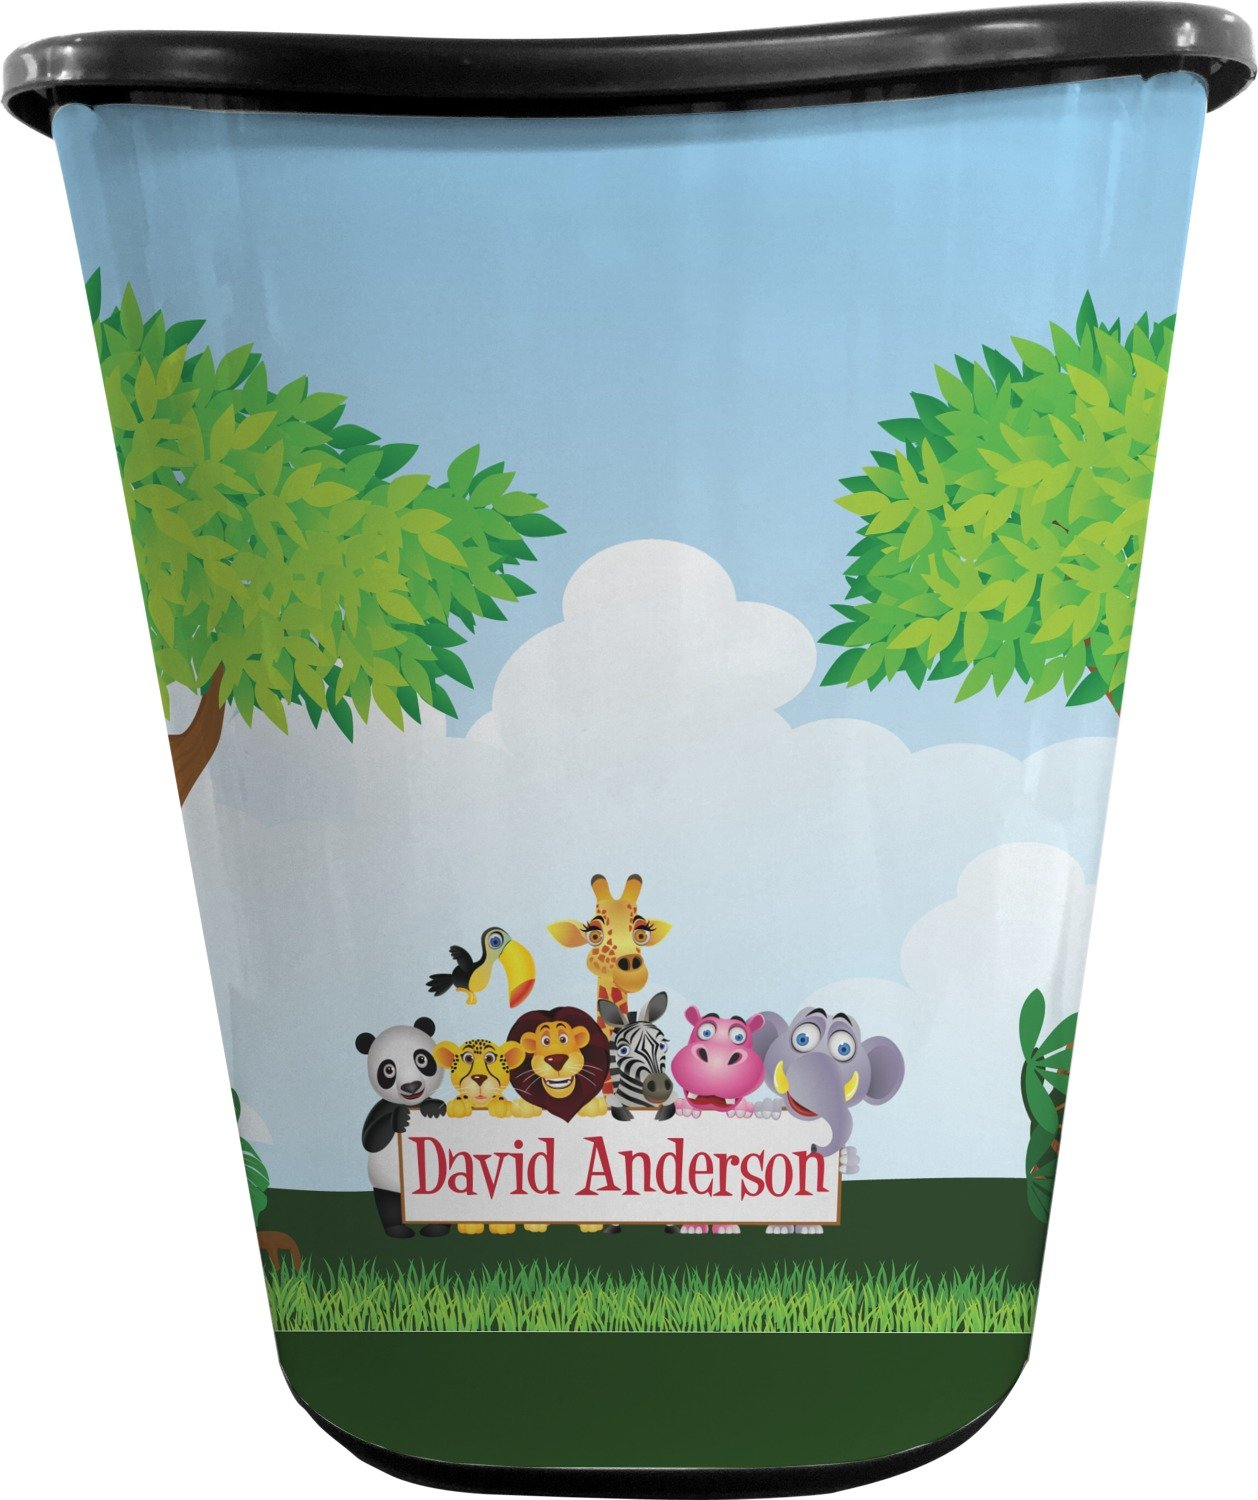 RNK Shops Animals Waste Basket - Double Sided (Black) (Personalized)